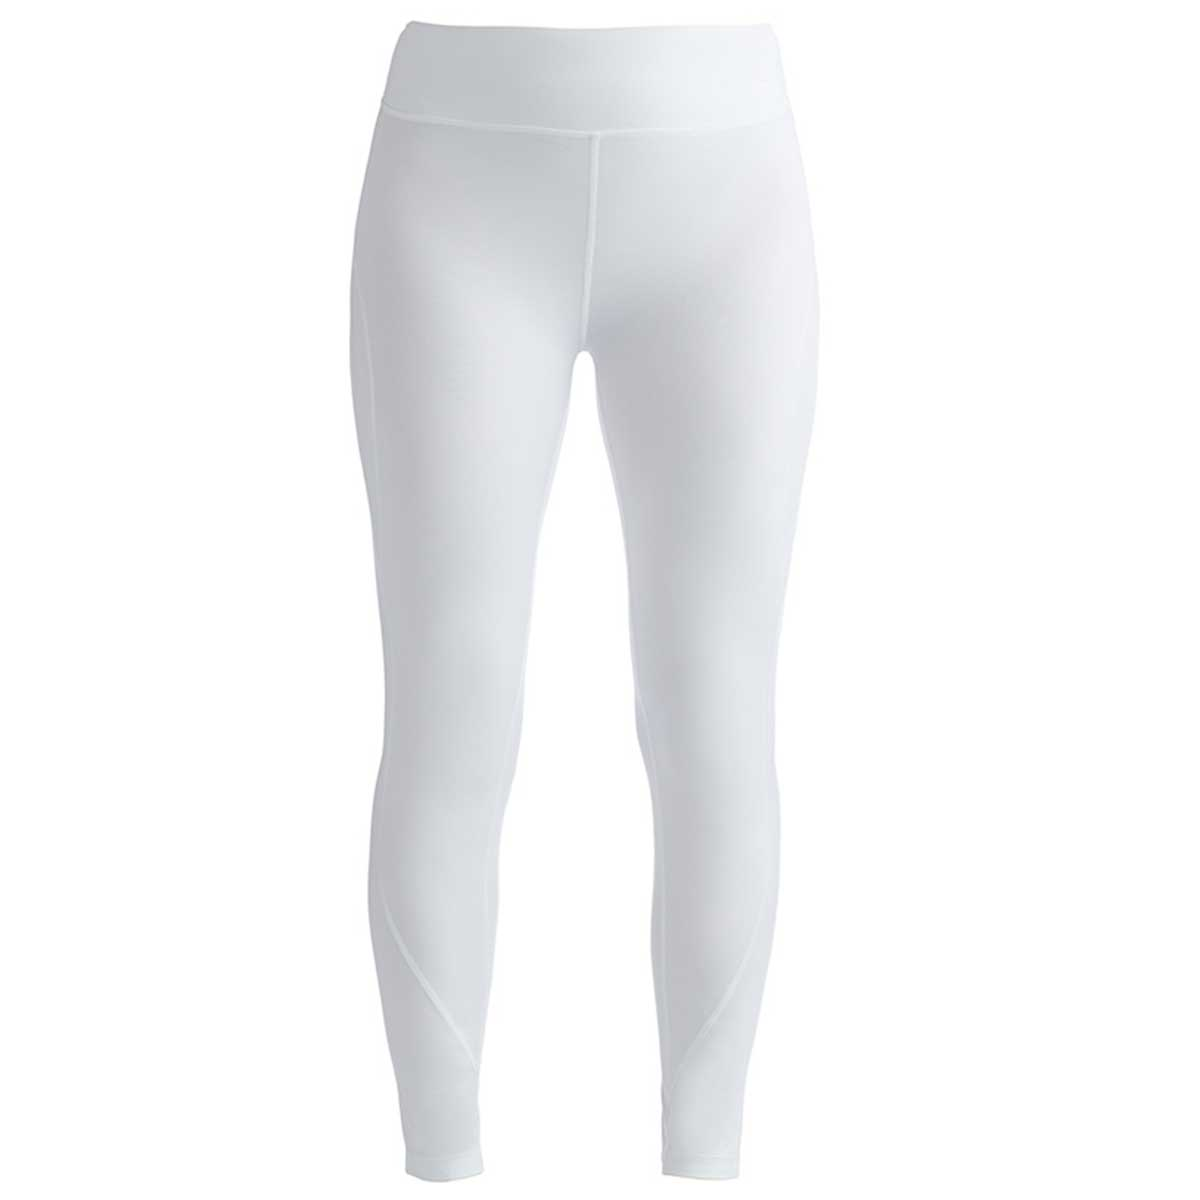 NILS Trinna Legging in White